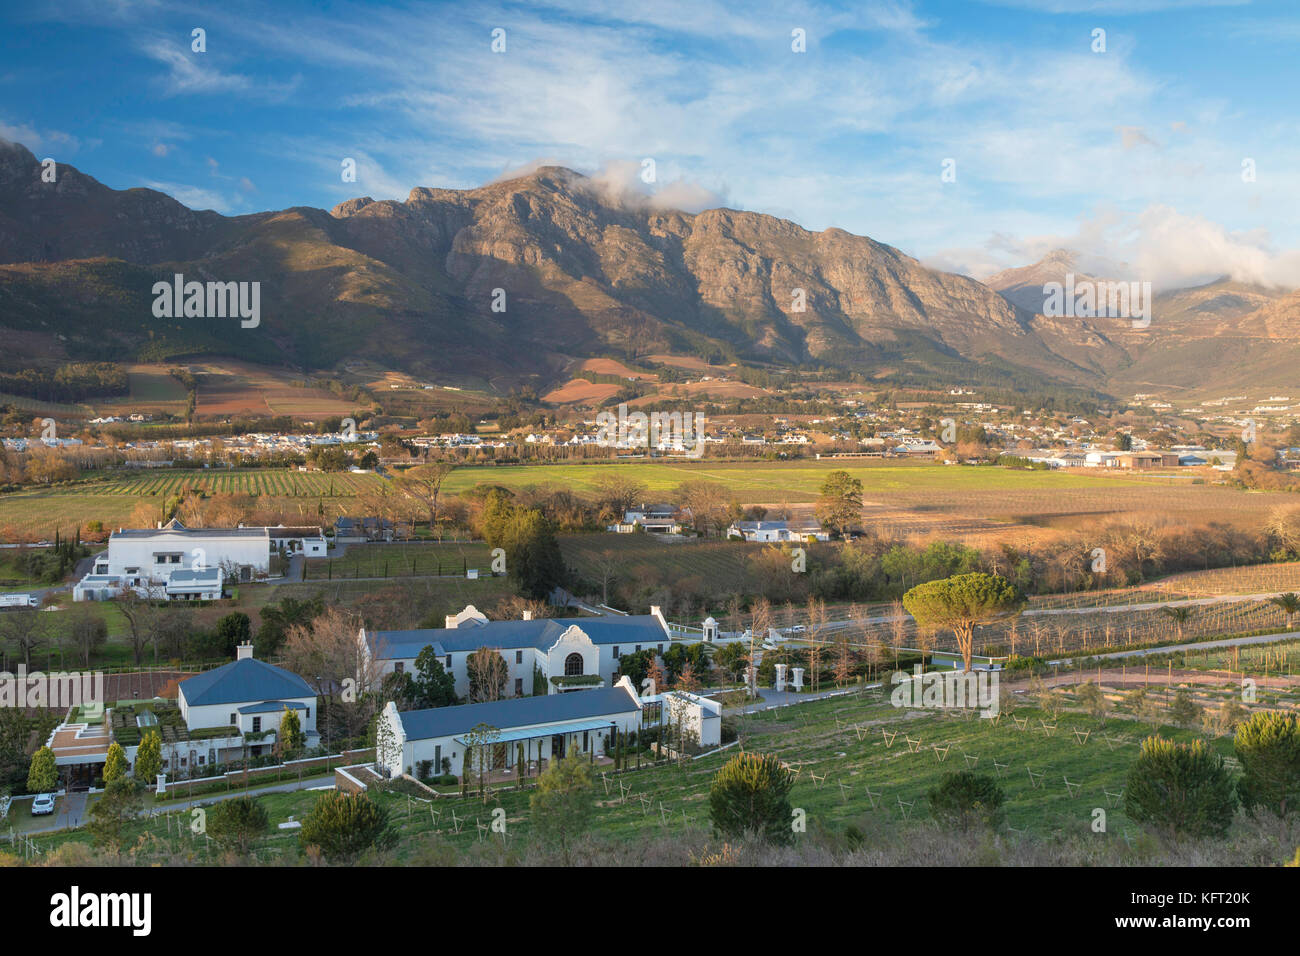 Mullineux and Leeu Family Wines Estate, Franschhoek, Western Cape, South Africa - Stock Image